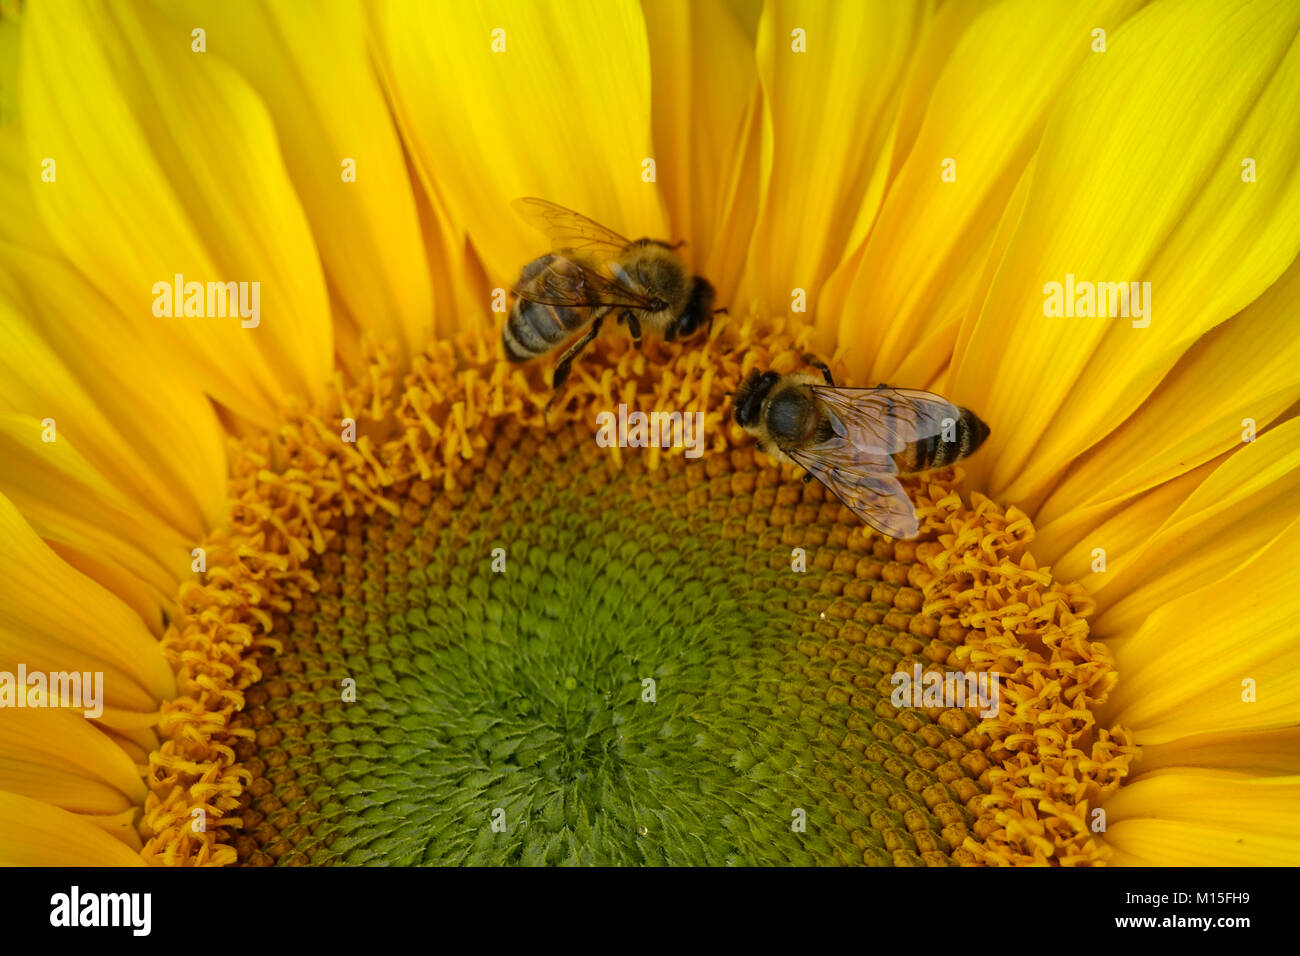 Singular Happy Yellow Sunflower in the Garden with Bees Stock Photo